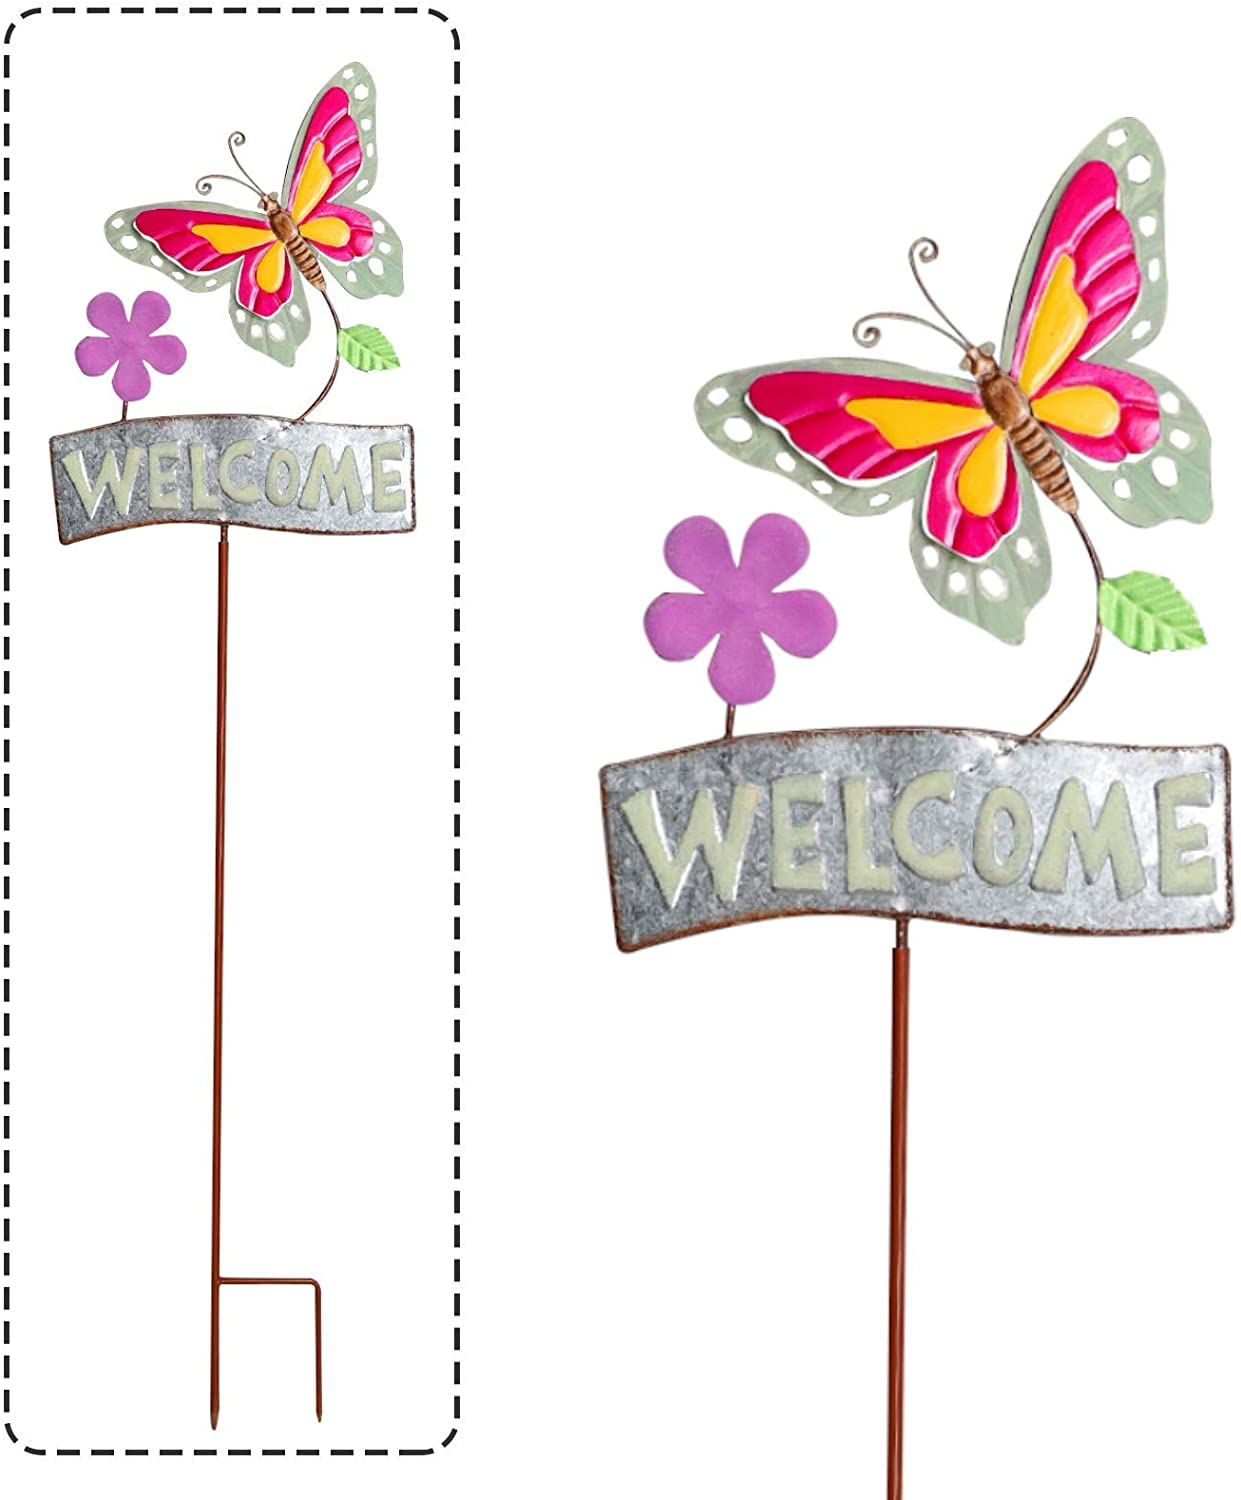 MorTime Metal Butterfly Garden Stake with Welcome Sign, 40 Inch Glow in Dark Outdoor Yard Stake Signs for Spring Outdoor Yard Lawn Pathway Walkway Driveway Decorations